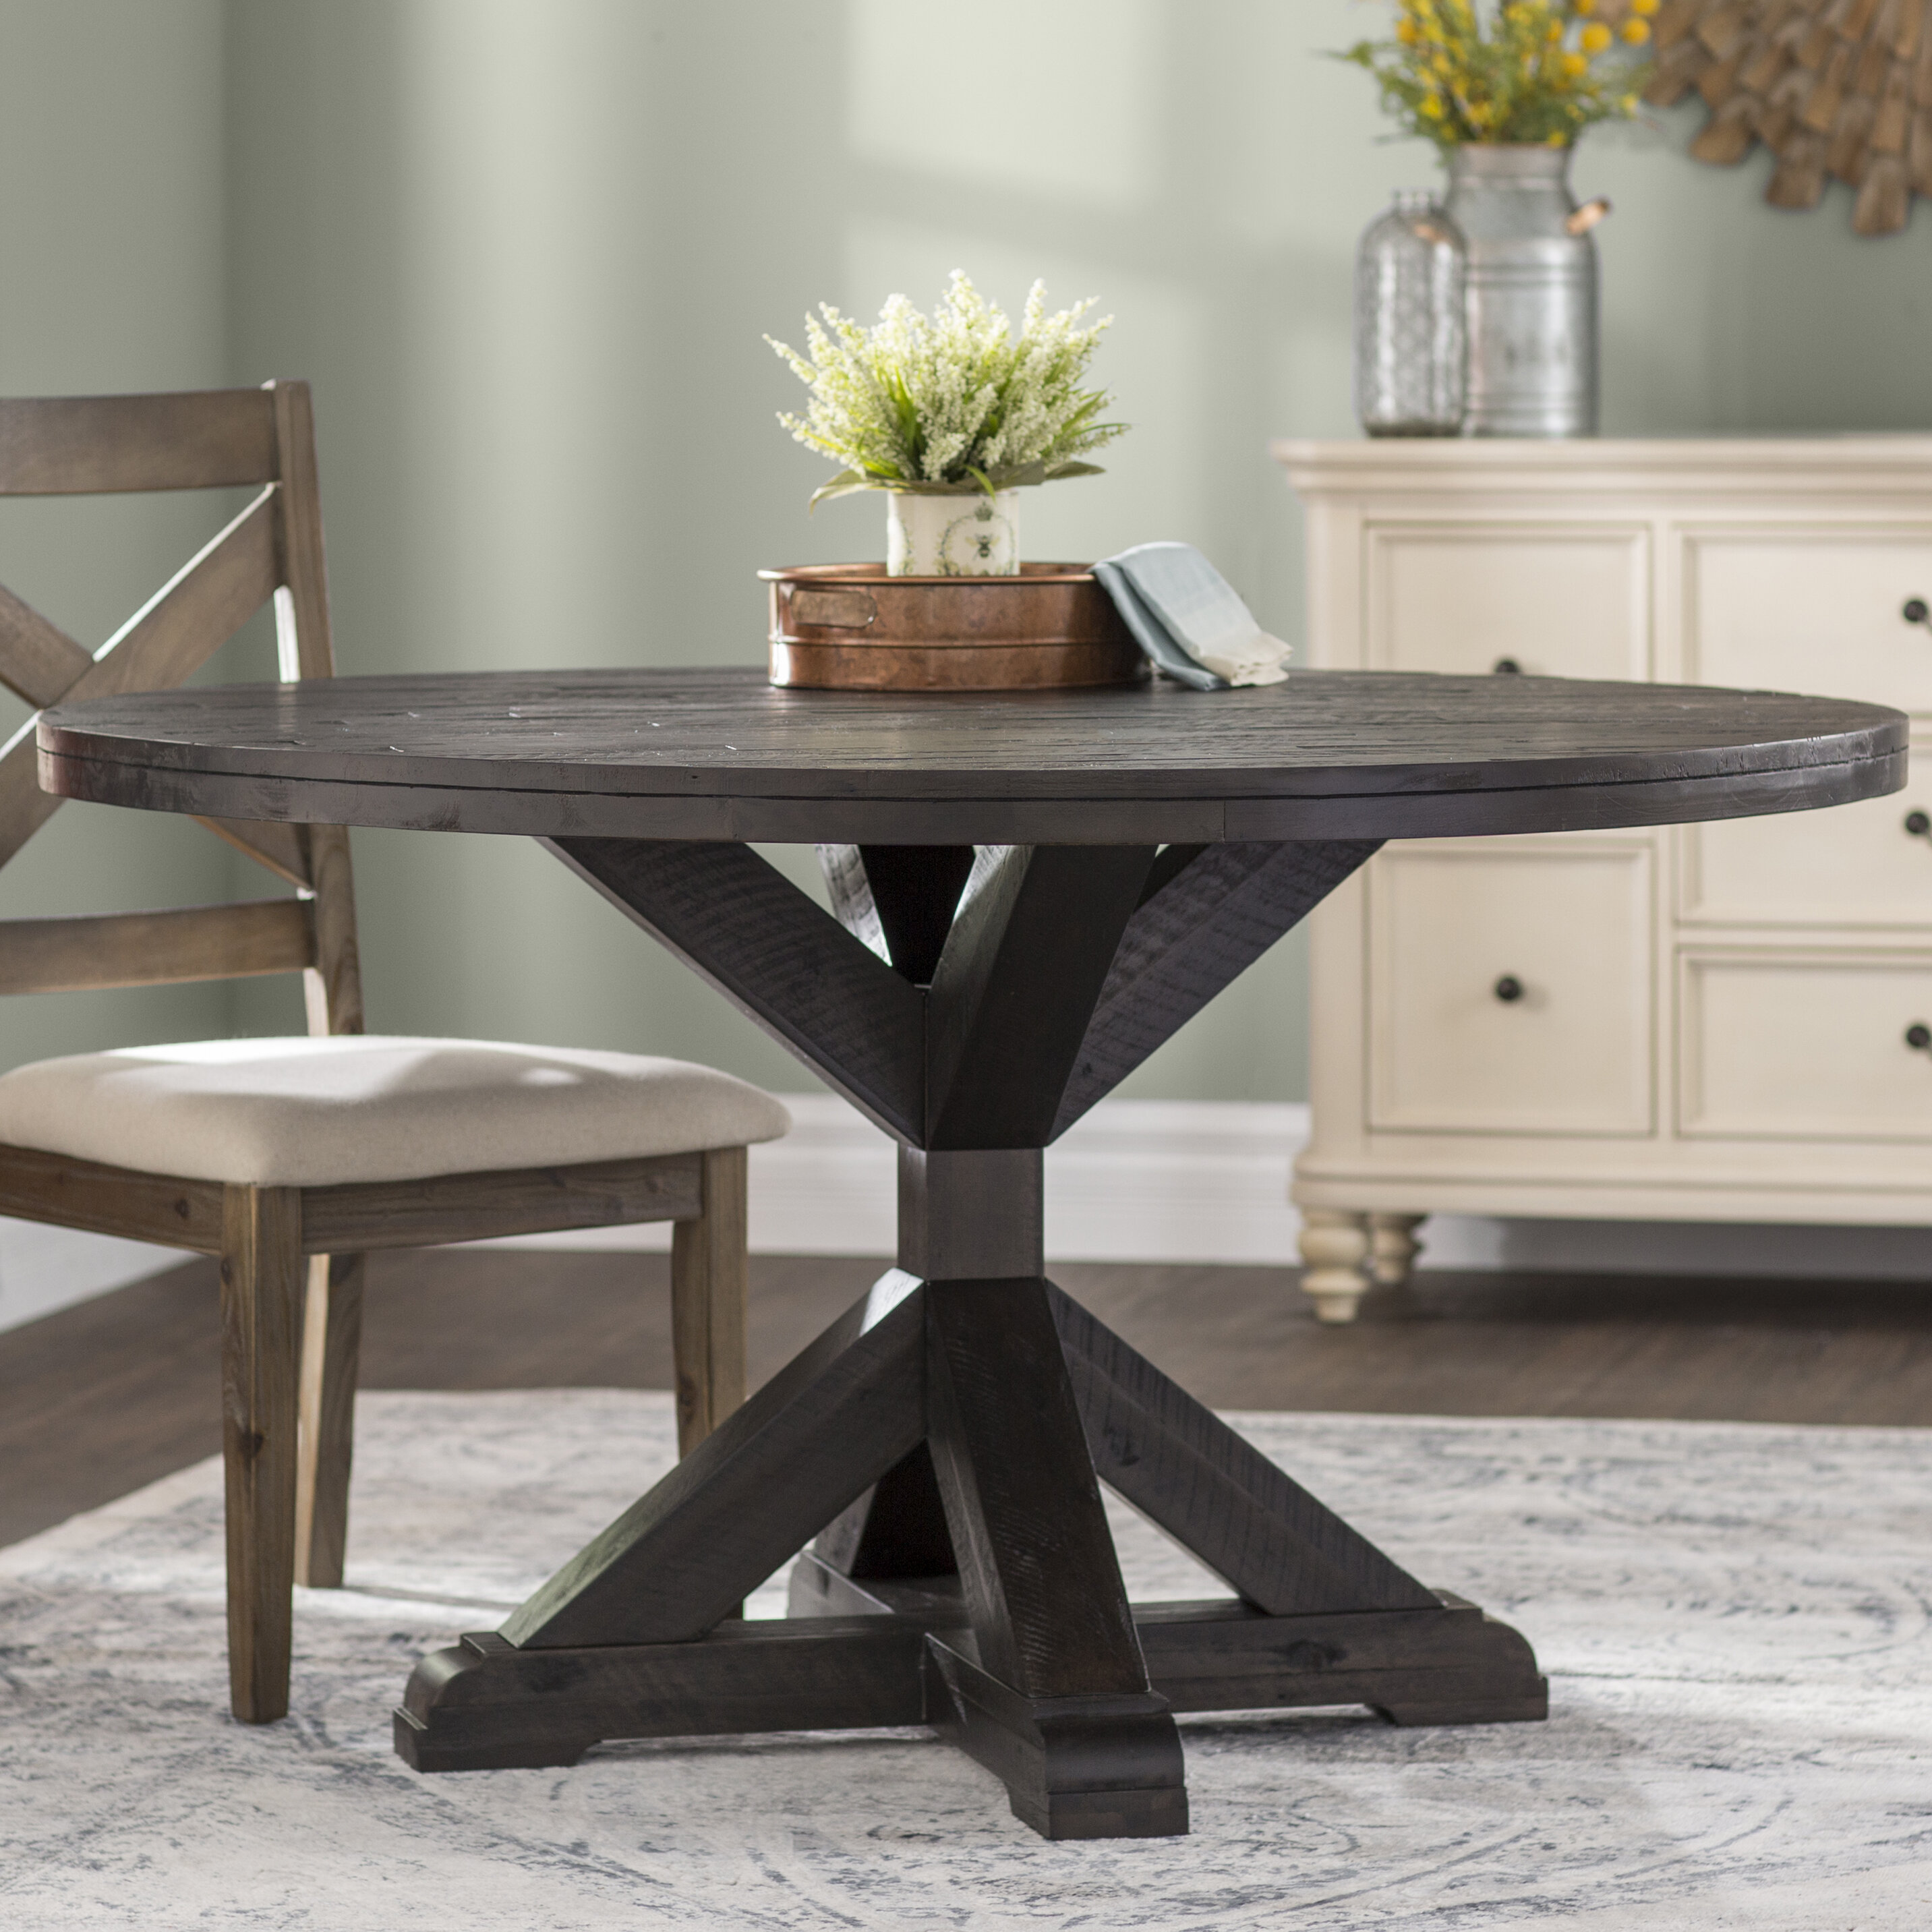 Laurel foundry modern farmhouse colborne solid wood dining table reviews wayfair